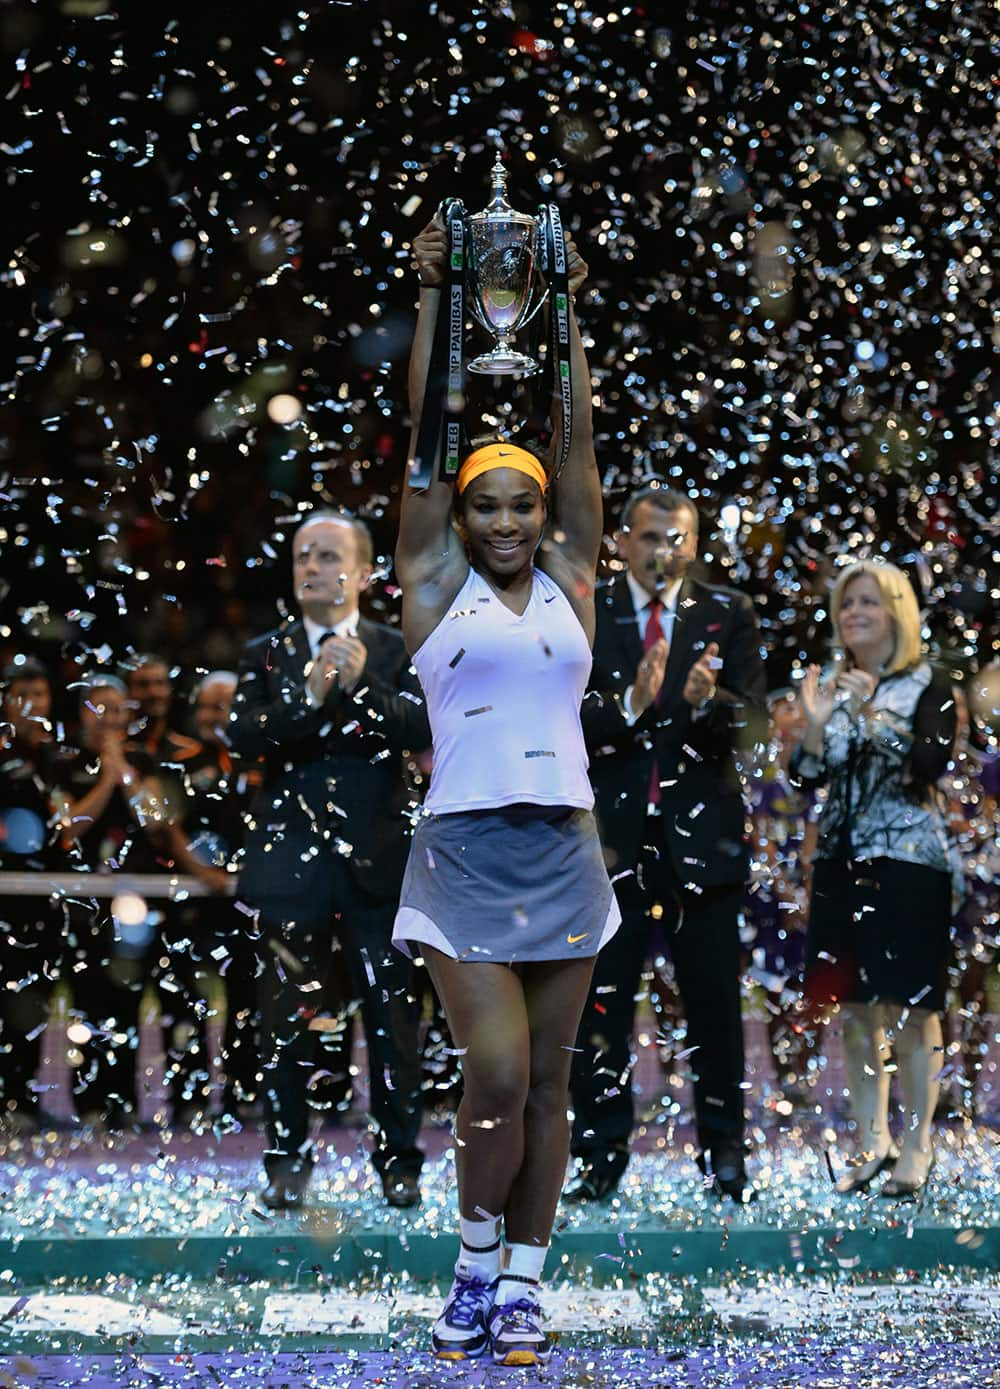 Serena Williams of the USA holds up the trophy after her victory over Li Na of China in the final of the WTA Championship in Istanbul, Turkey.